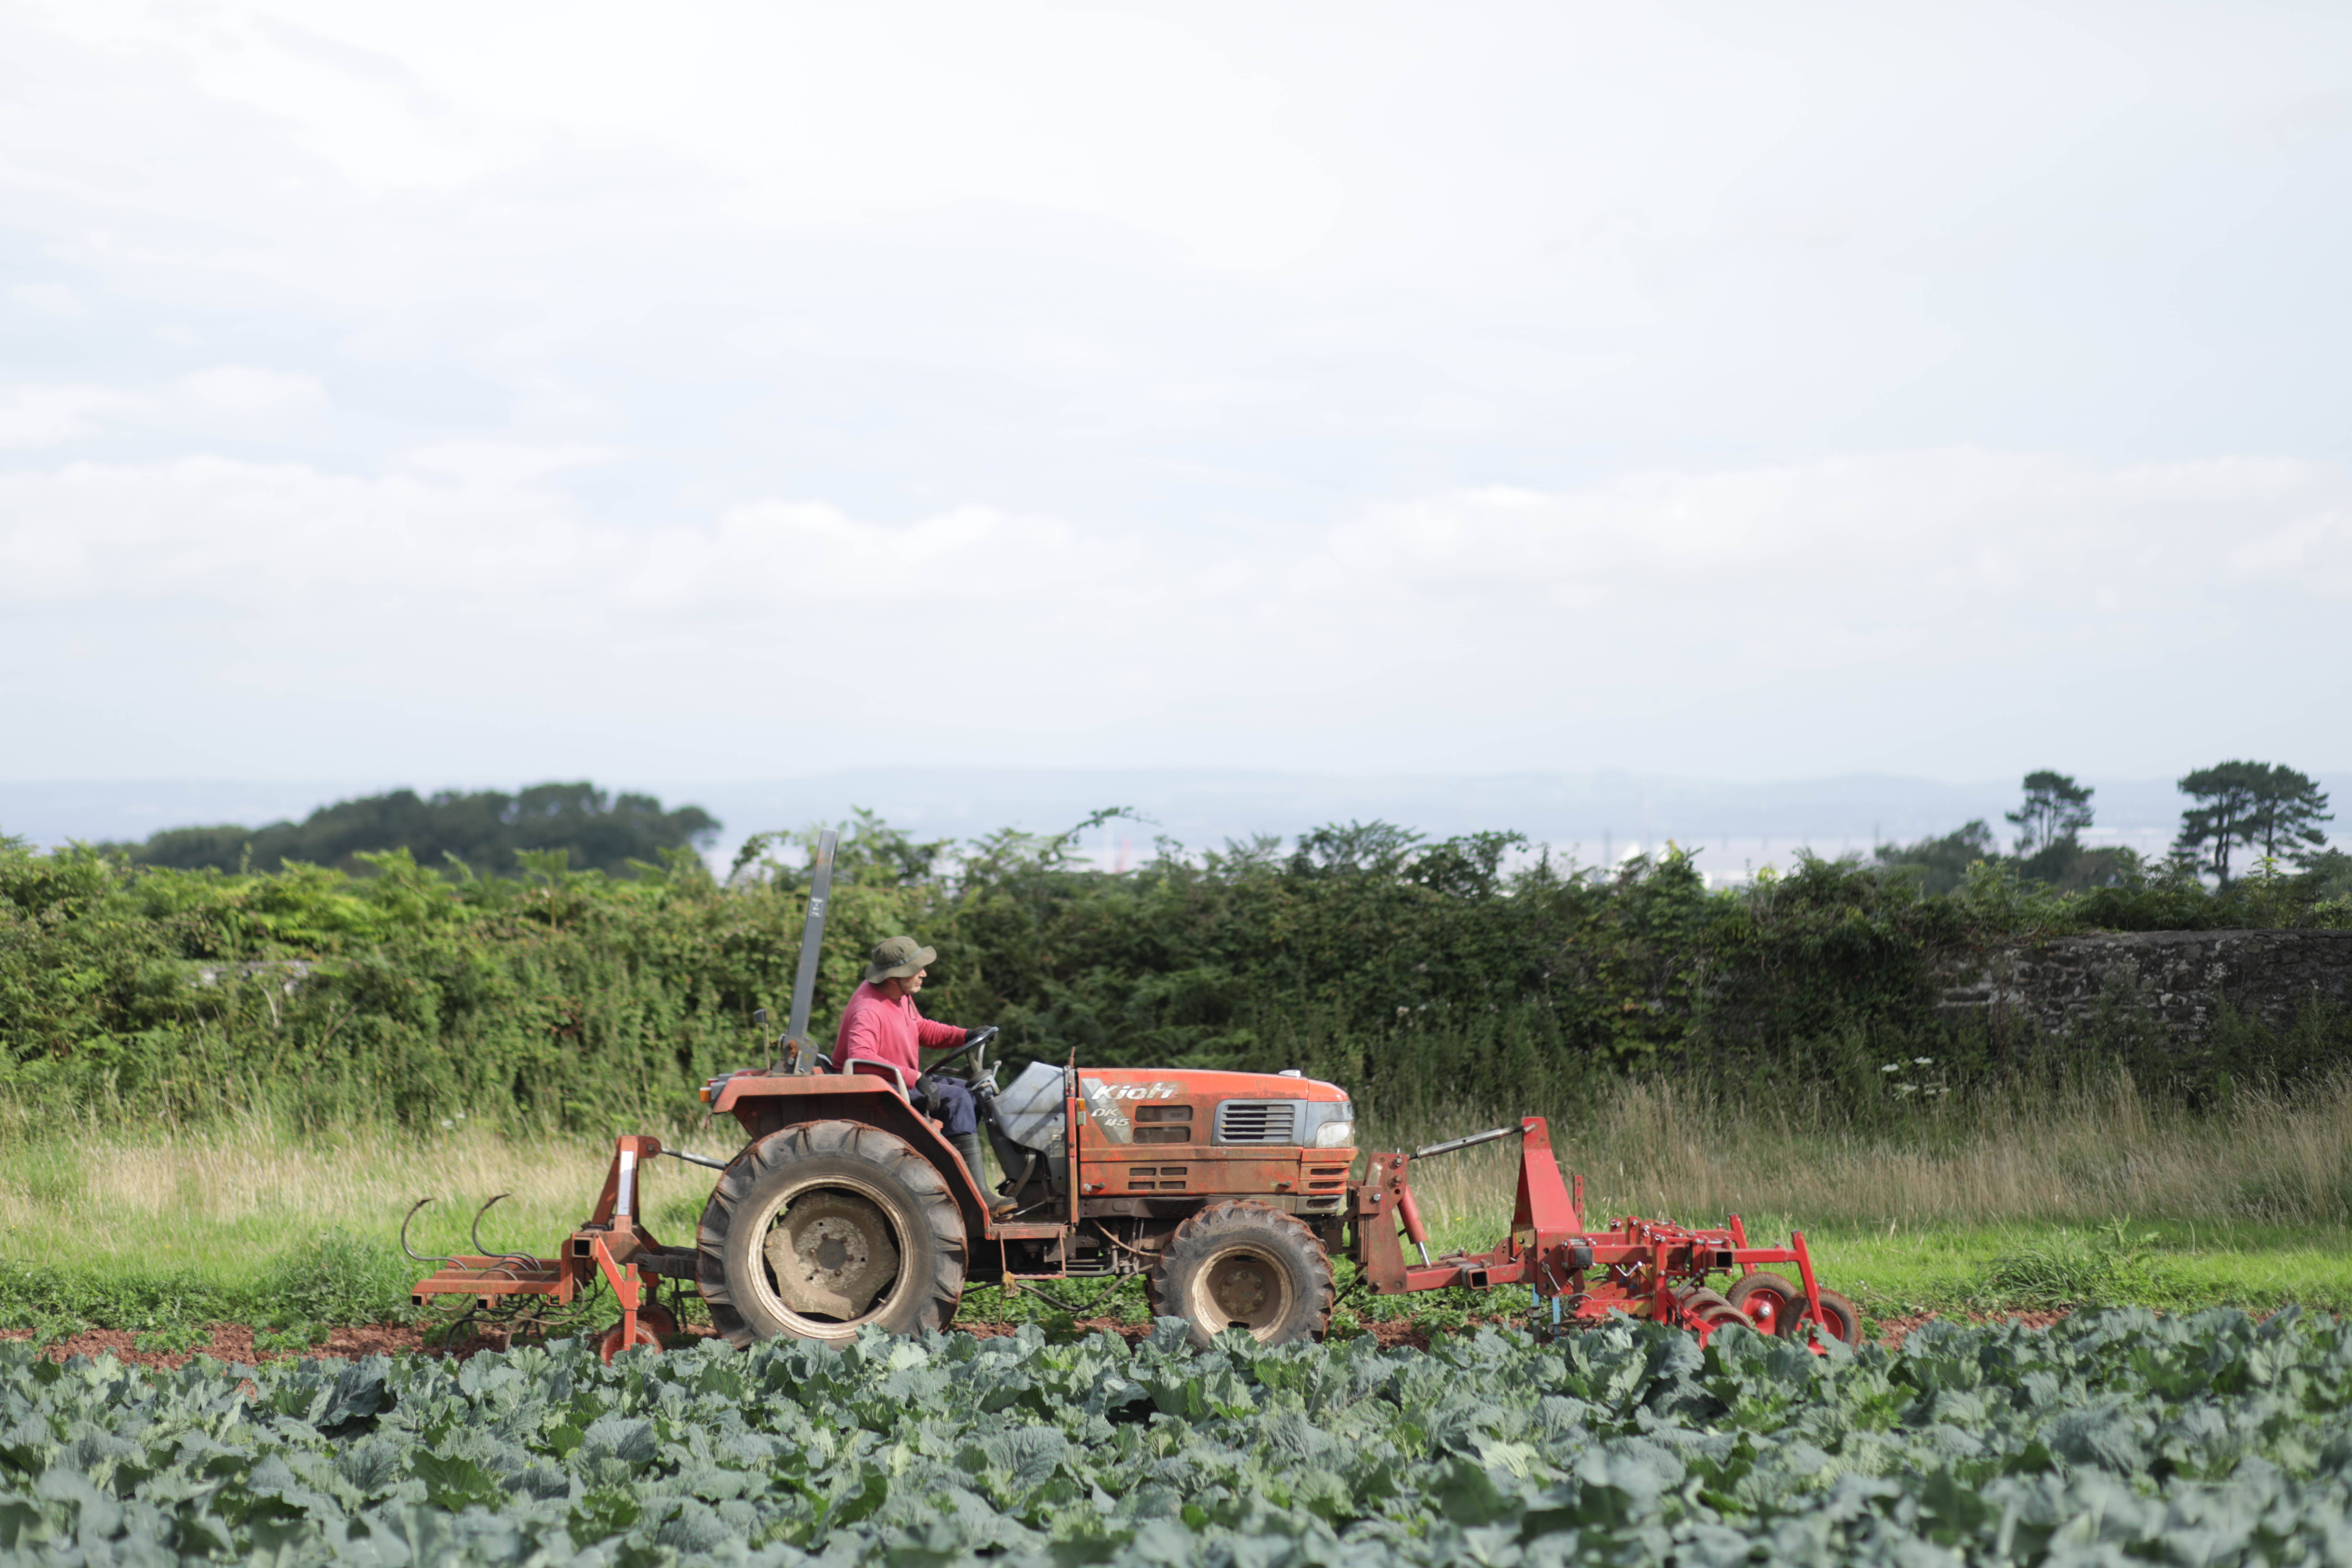 Our commitment to ensuring a resilient food and farming system in the UK